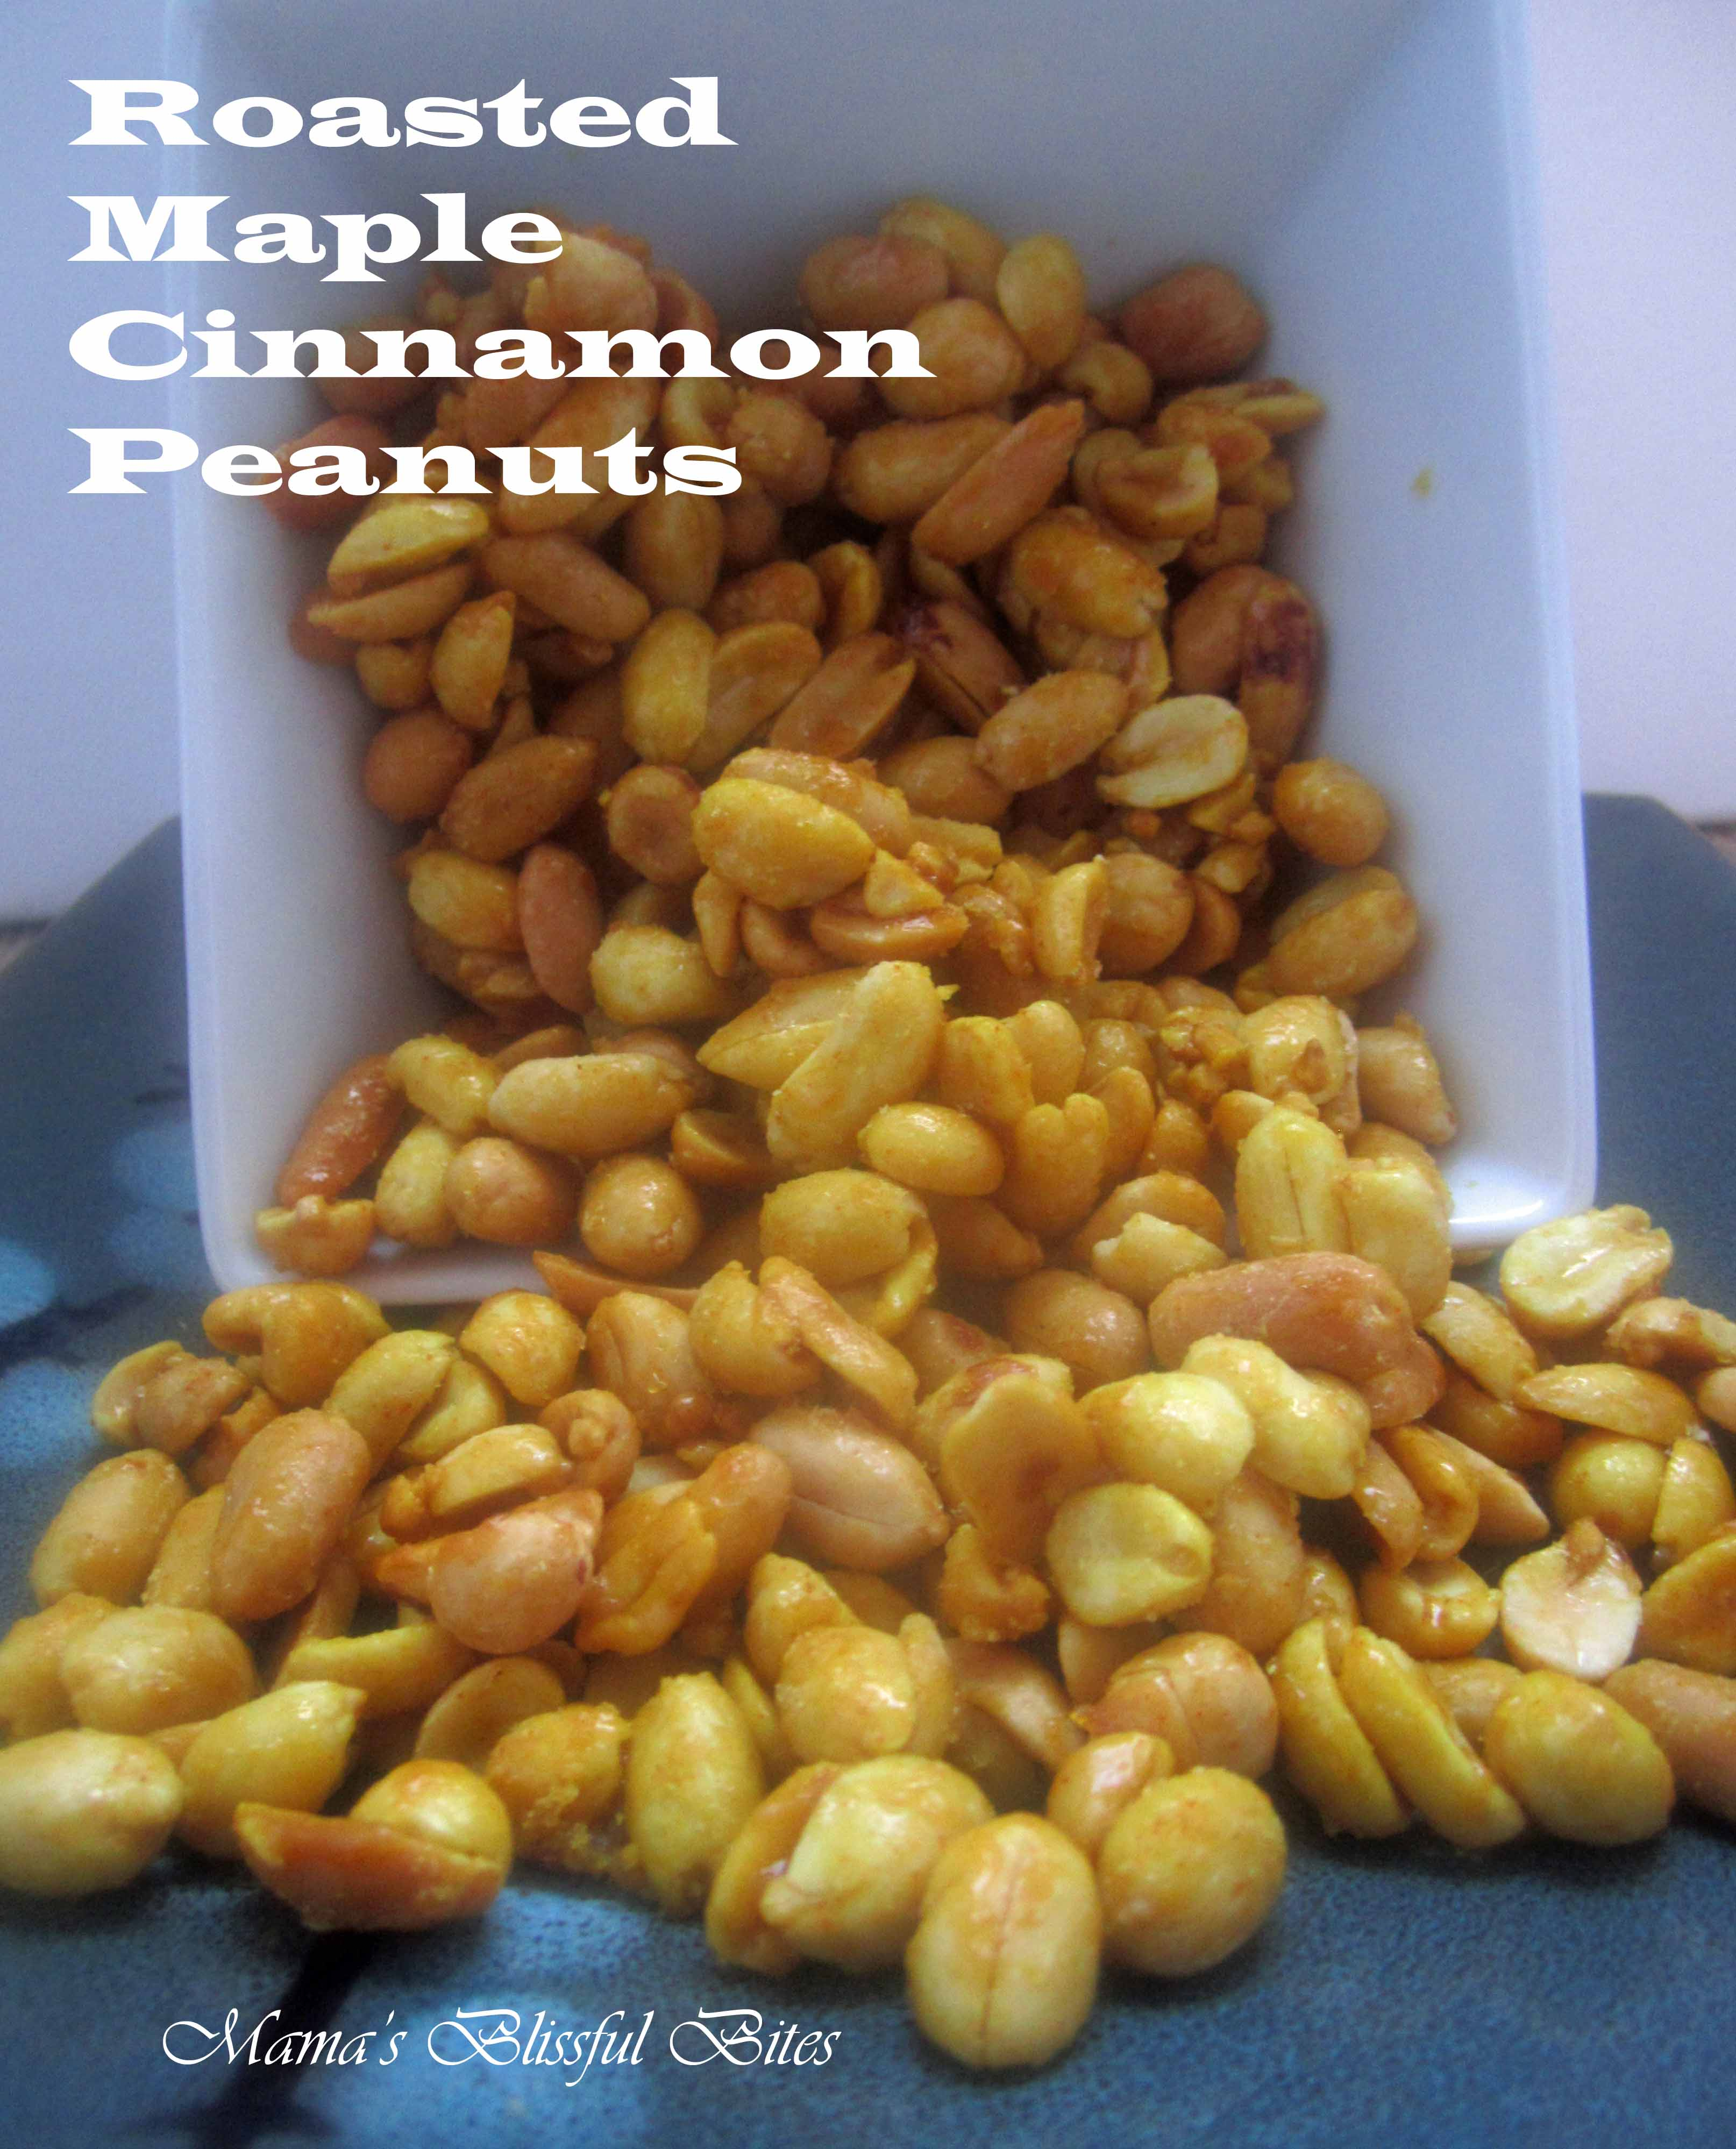 Roasted Maple Cinnamon Peanuts 3